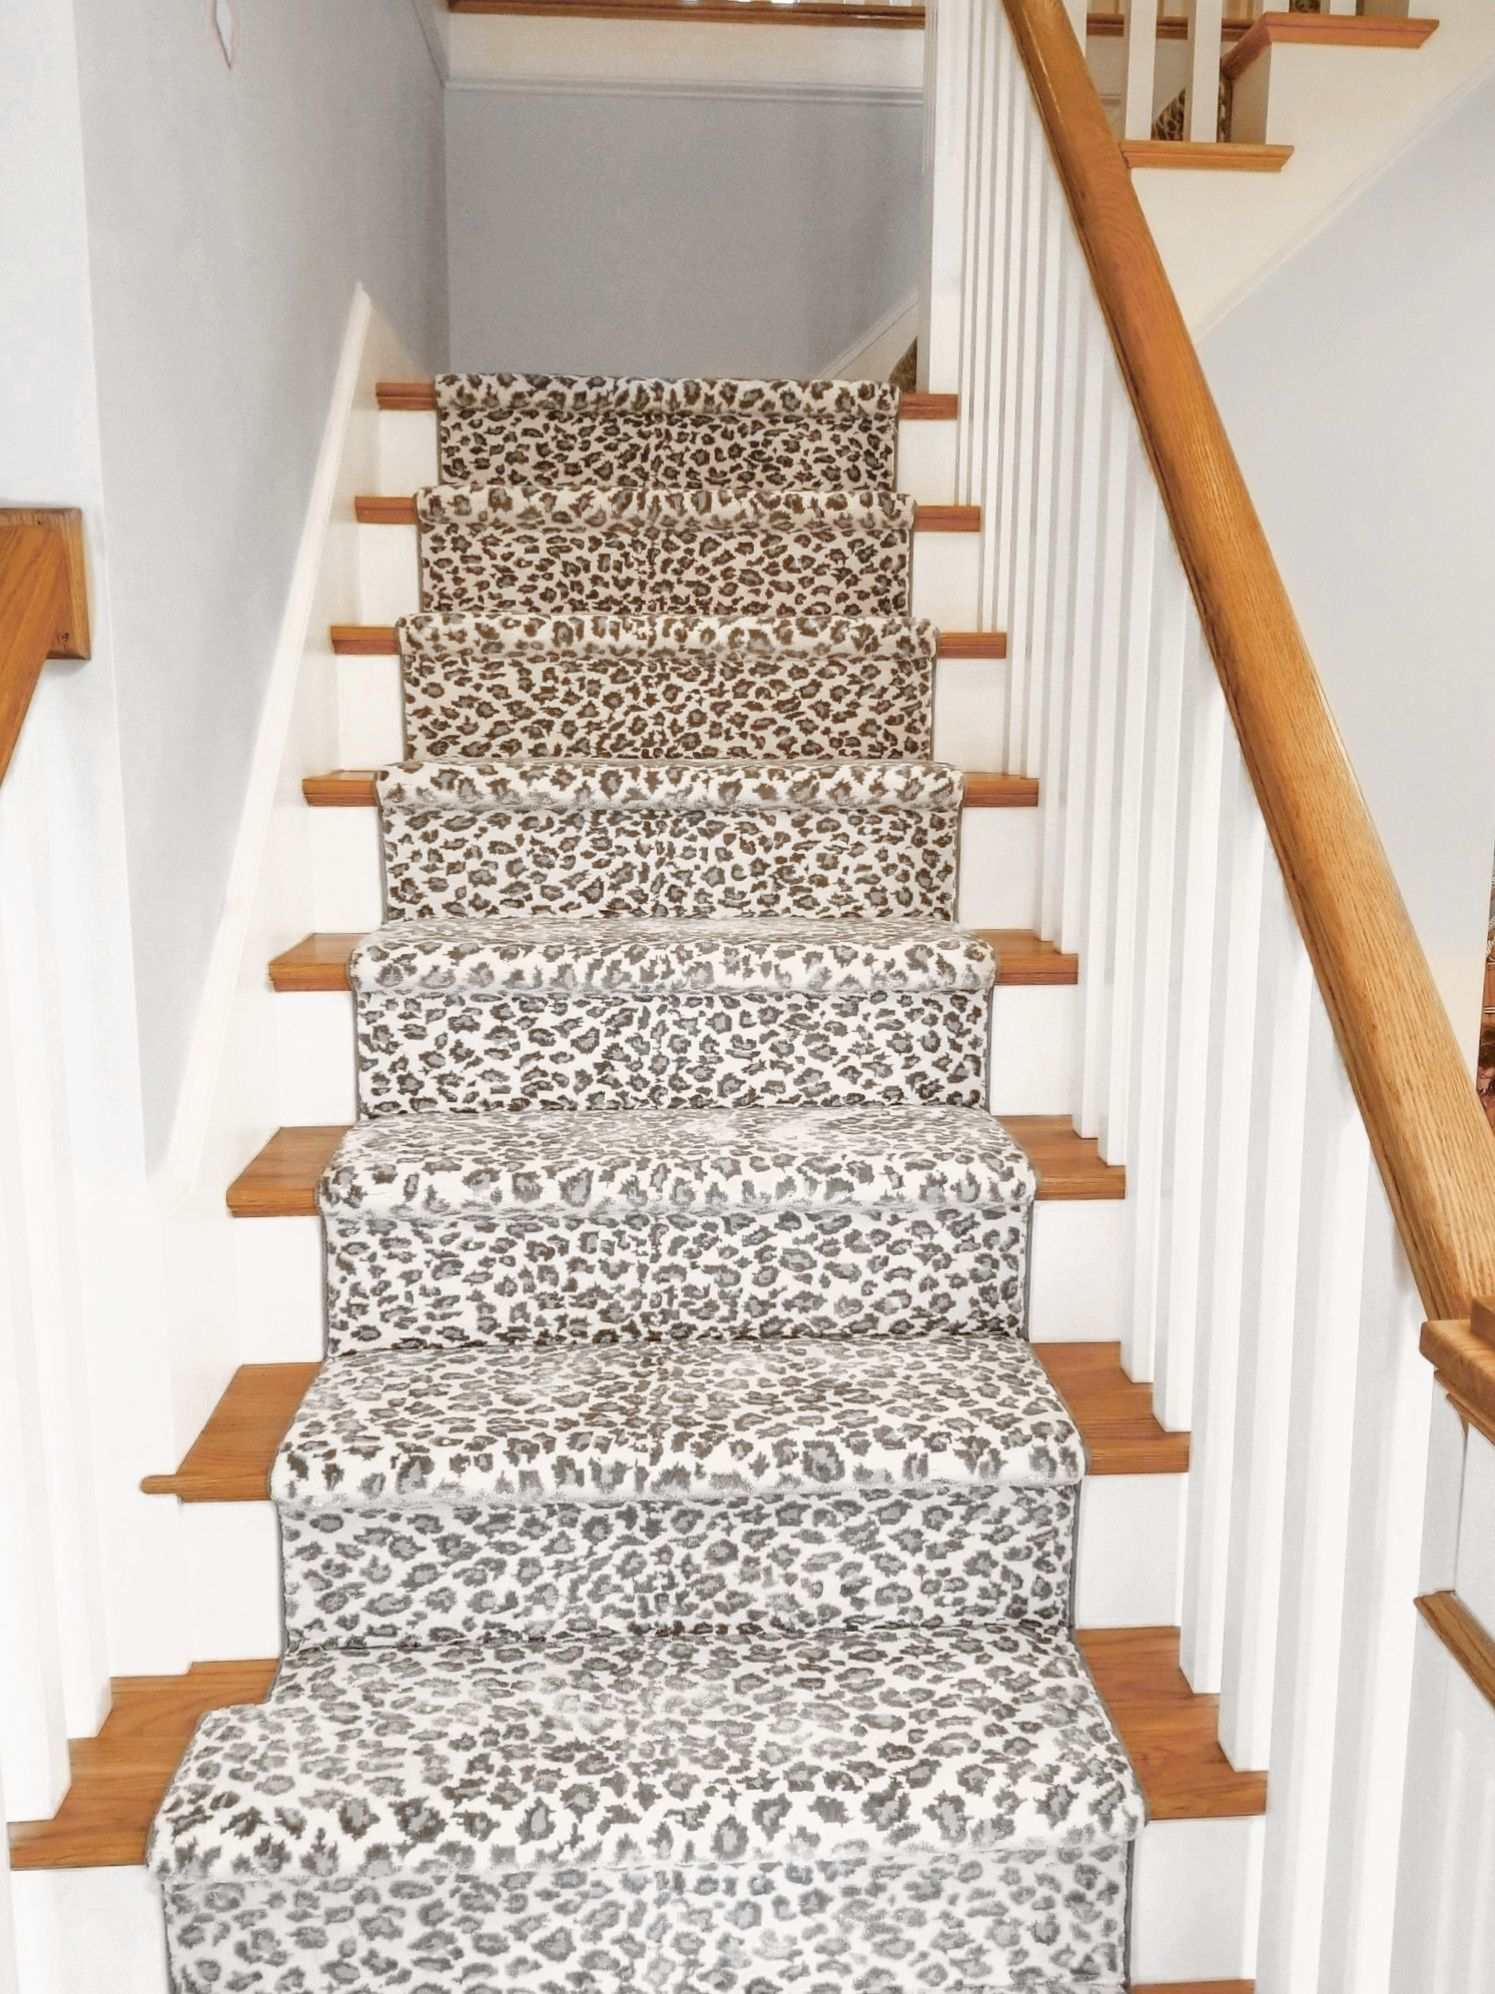 Interested In Installing An Animal Print Stair Runner Stair | Stair Carpets Near Me | Basement | Diamond Pattern | Wall To Wall | Berber | Stylish